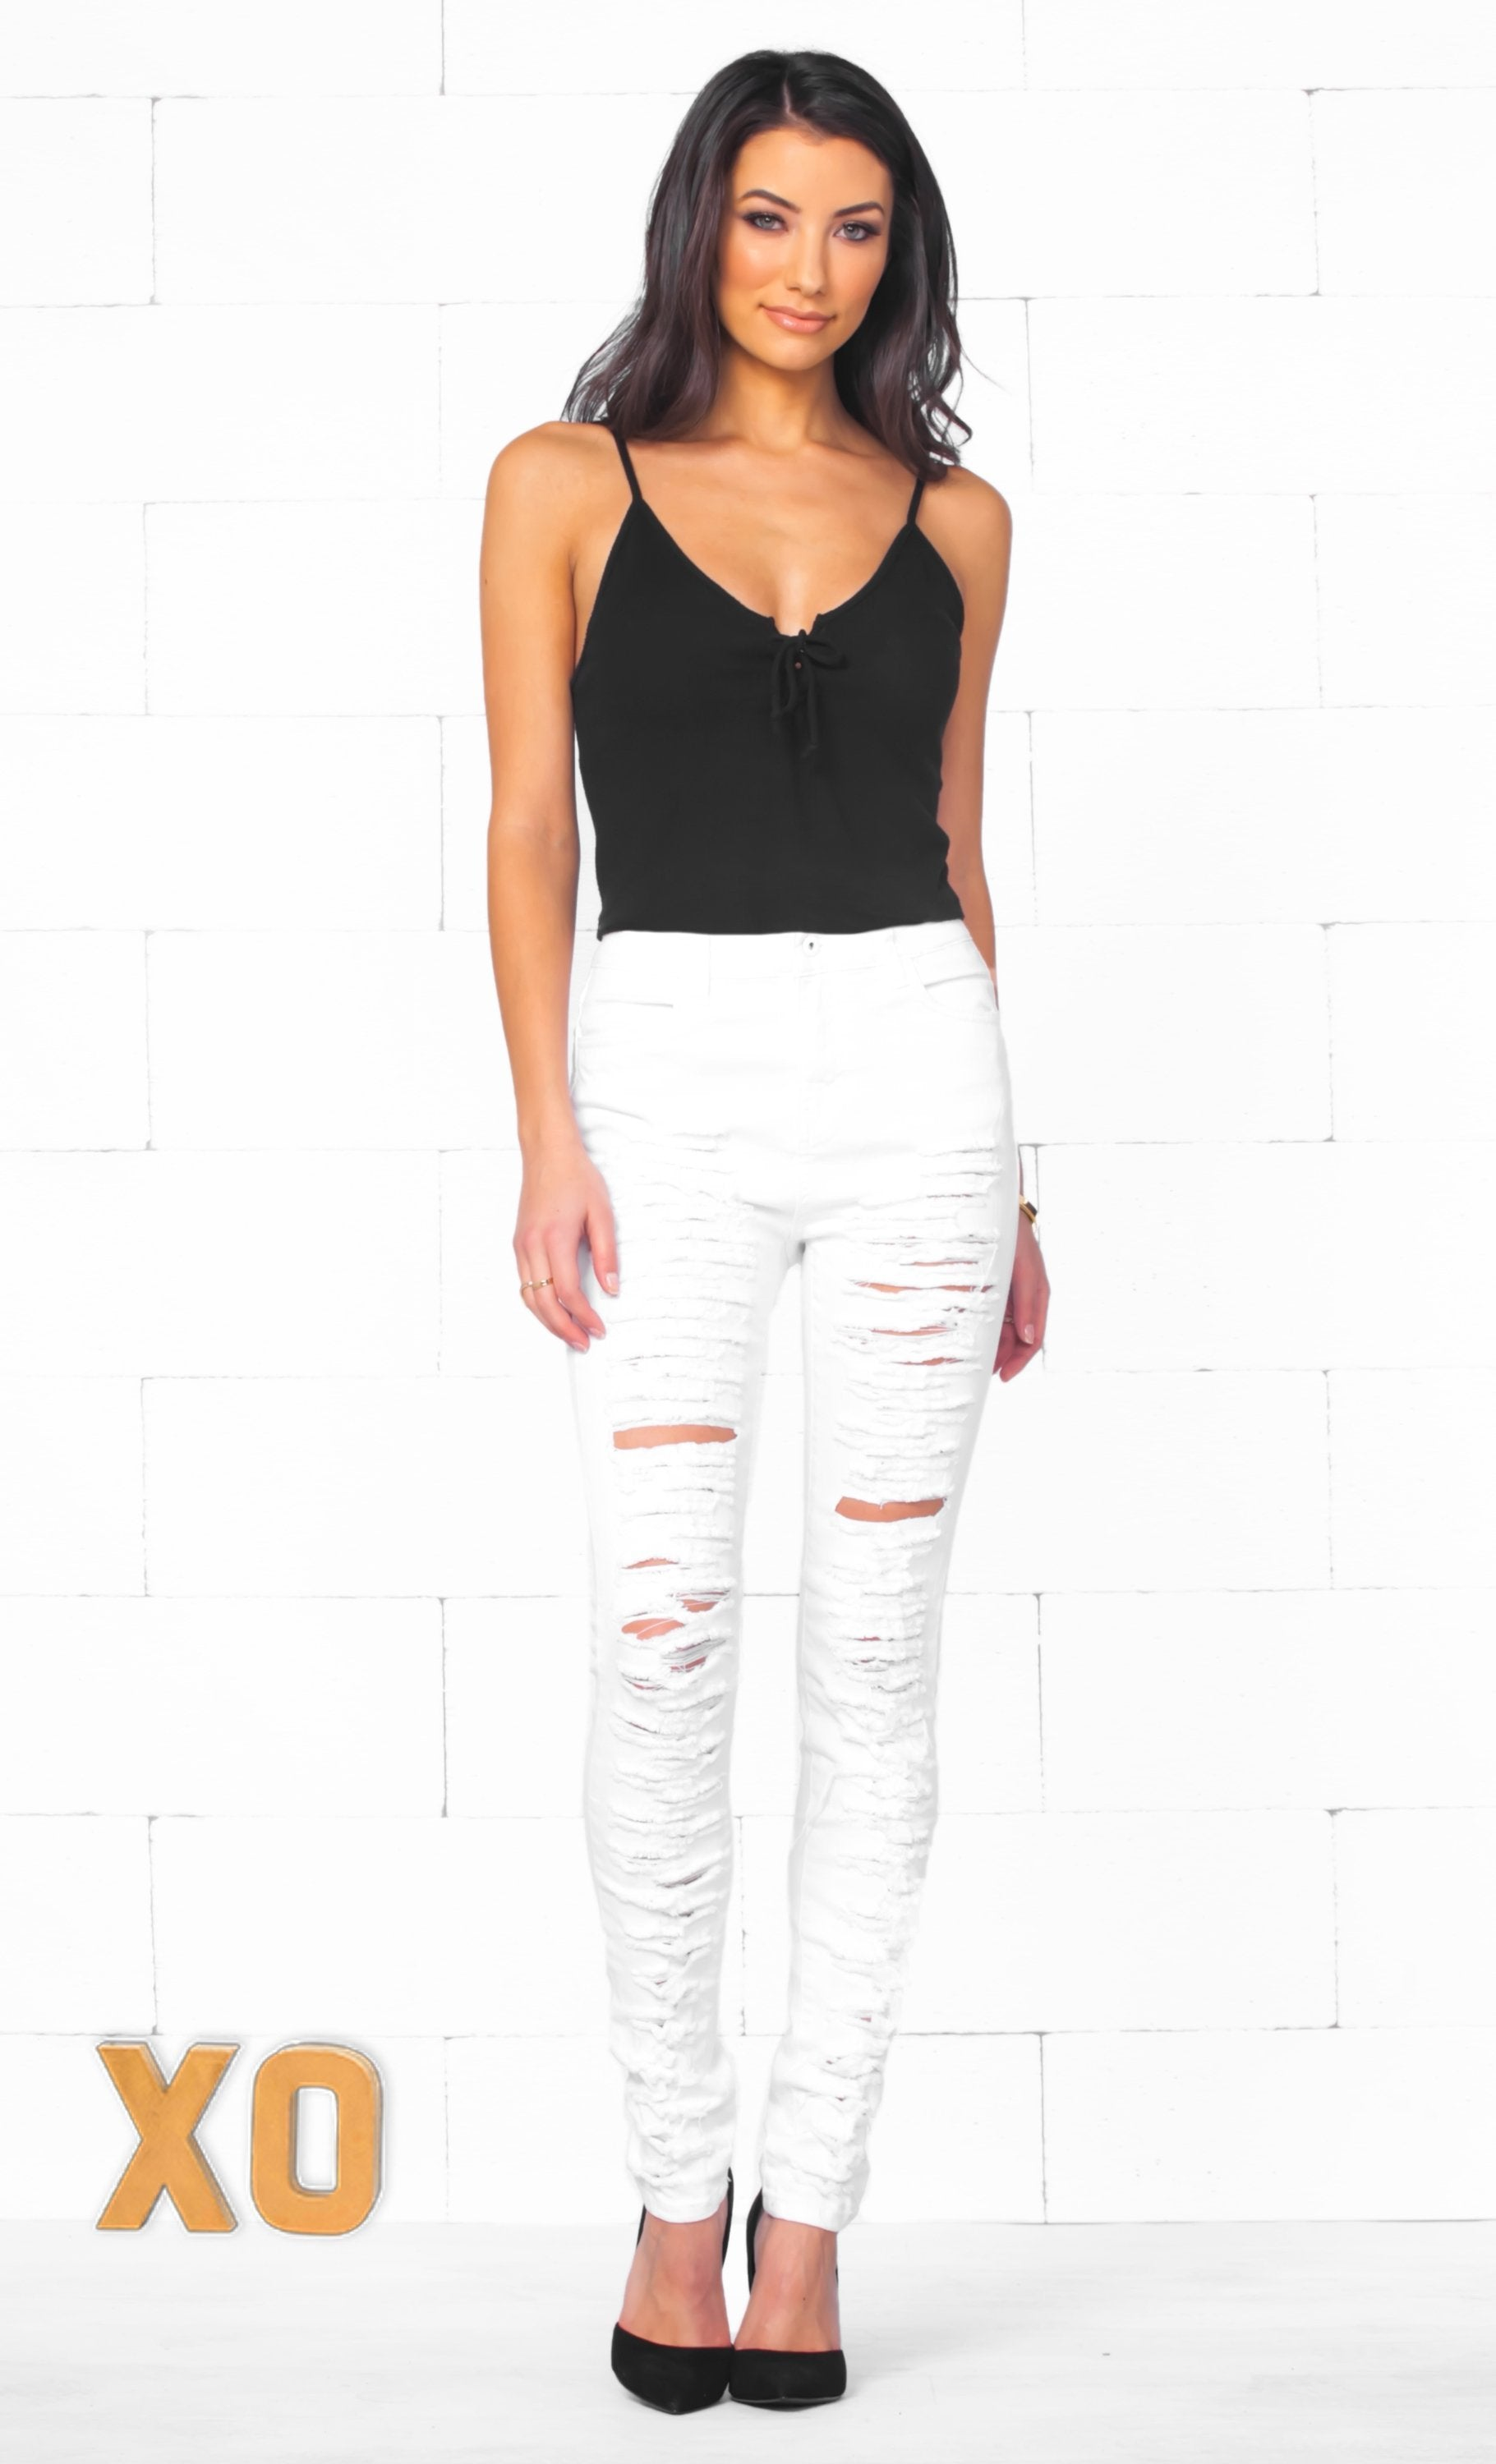 Indie XO Rock On White Destroyed Ripped High Waisted Stretchy Skinny Pencil Jeans Denim Pant - Just Ours! - Sold out